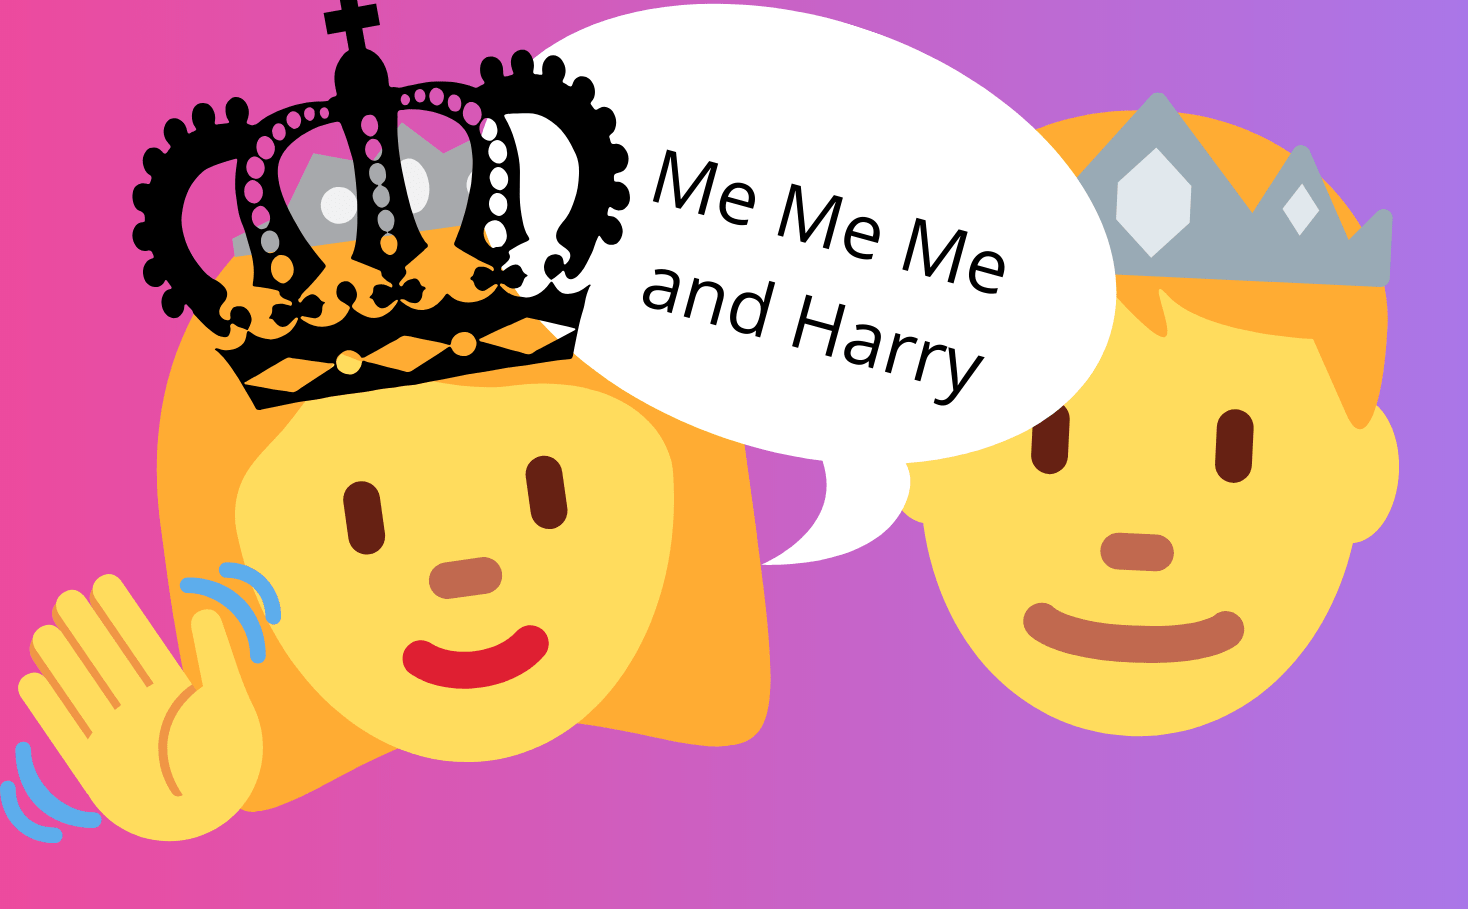 me-me-me-and-harry.png